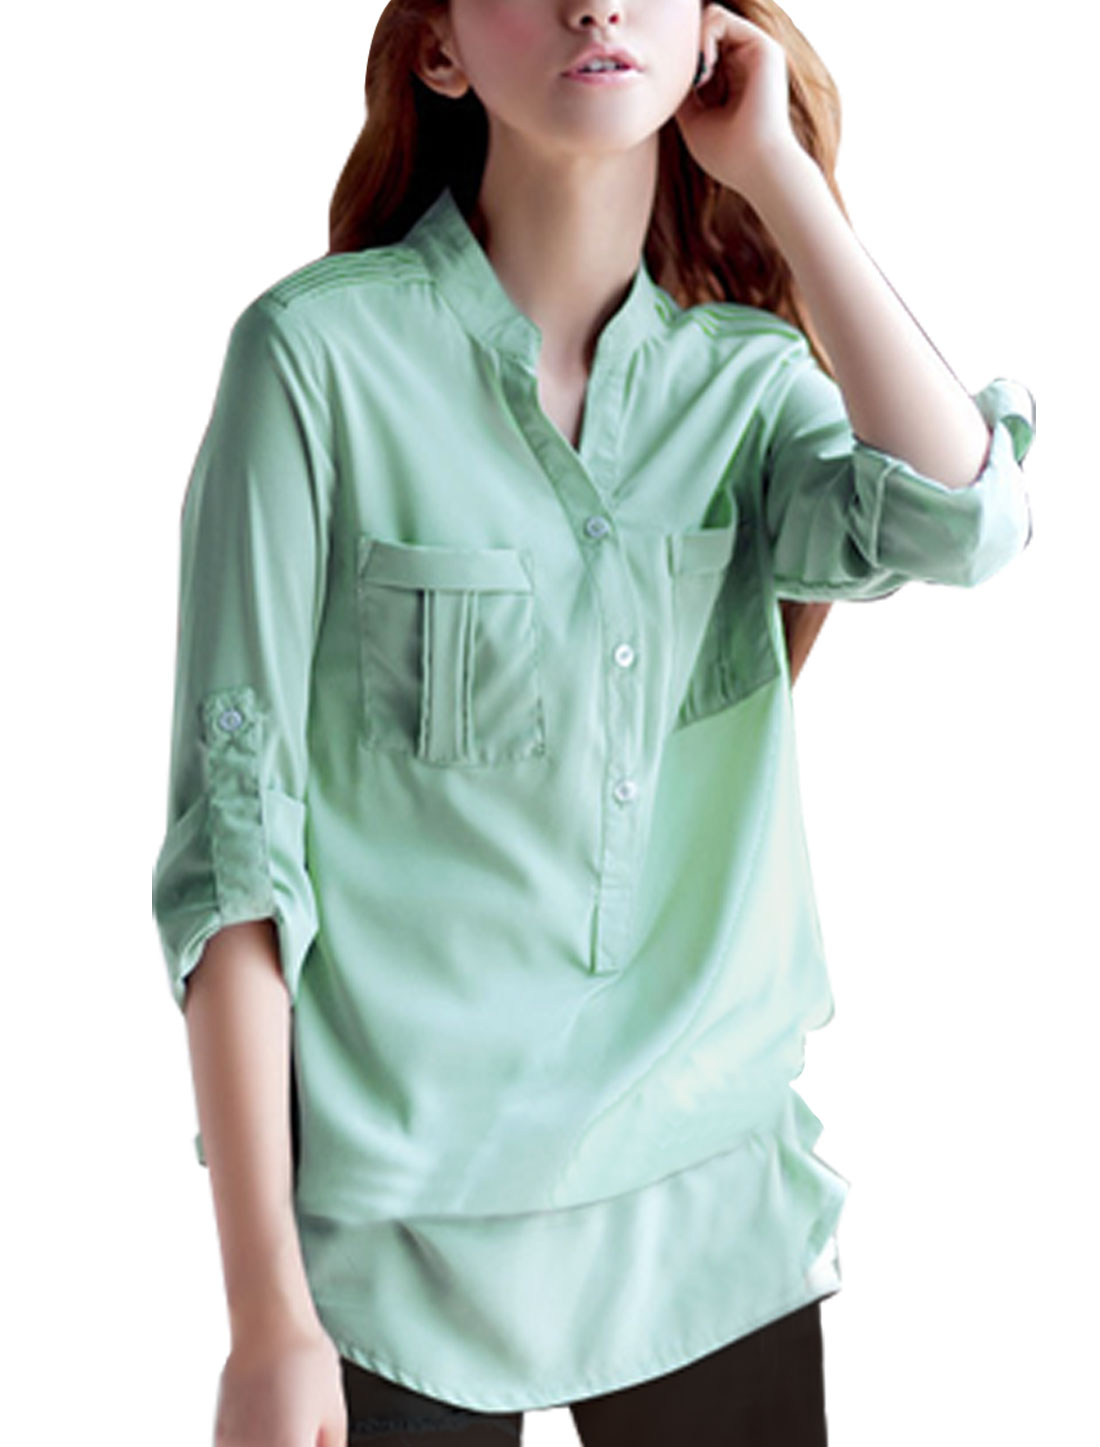 Cyan Stand Collar Single Breast Roll up Button Down Shirt S for Women